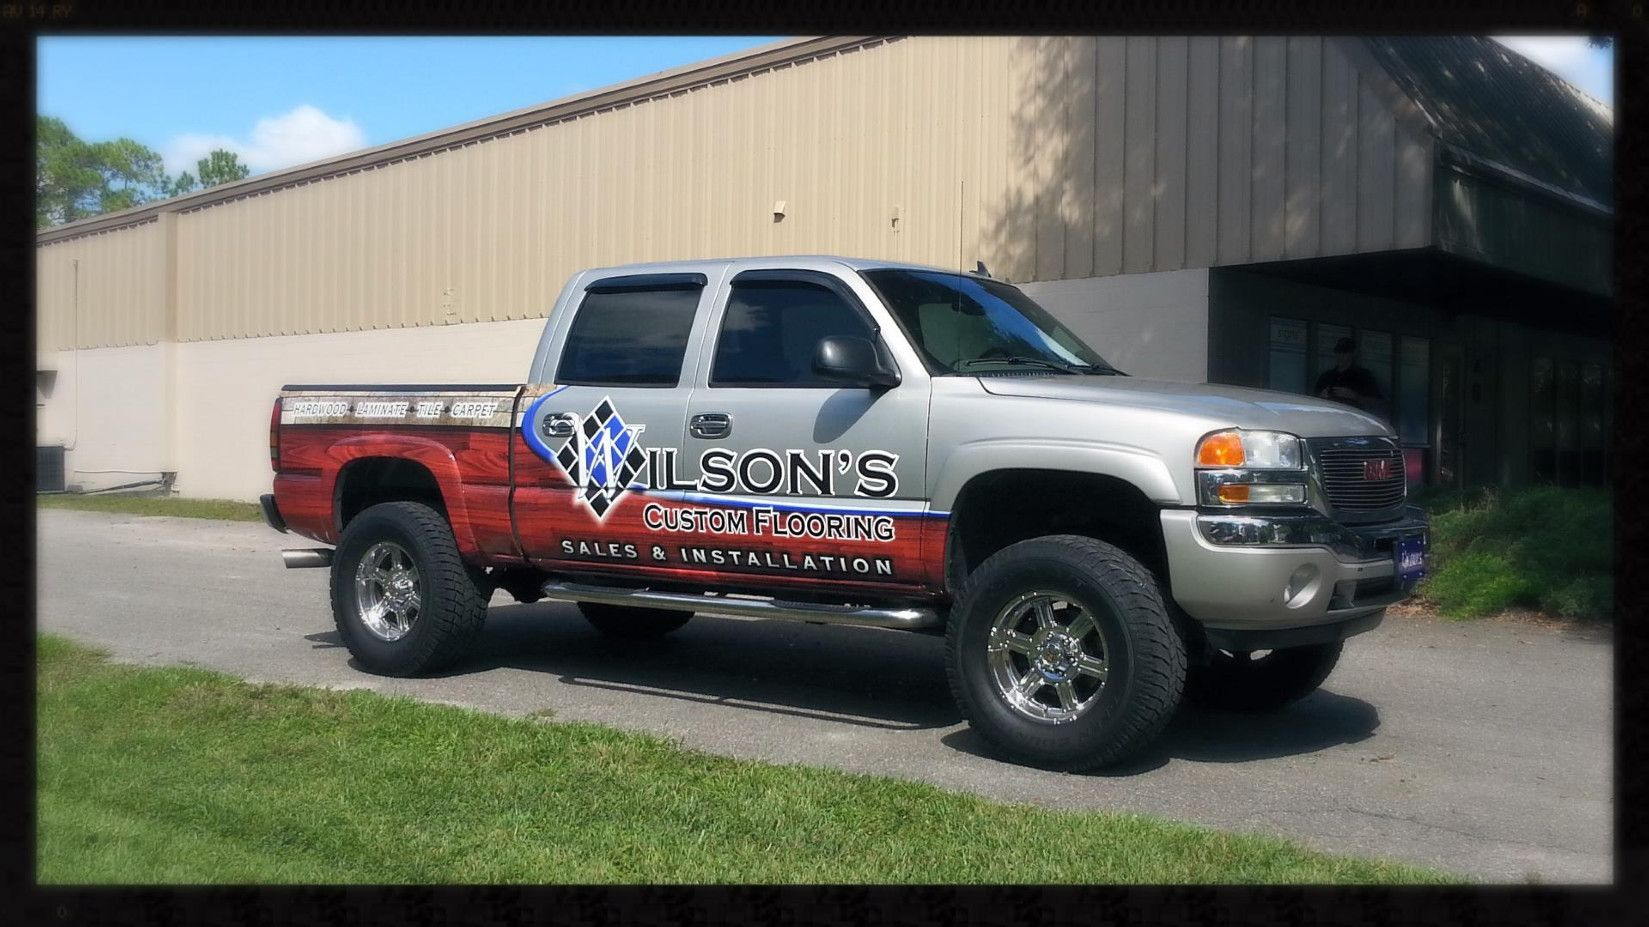 Pin by T Cristello on Vehicle Wraps   Flooring sale, Car ...